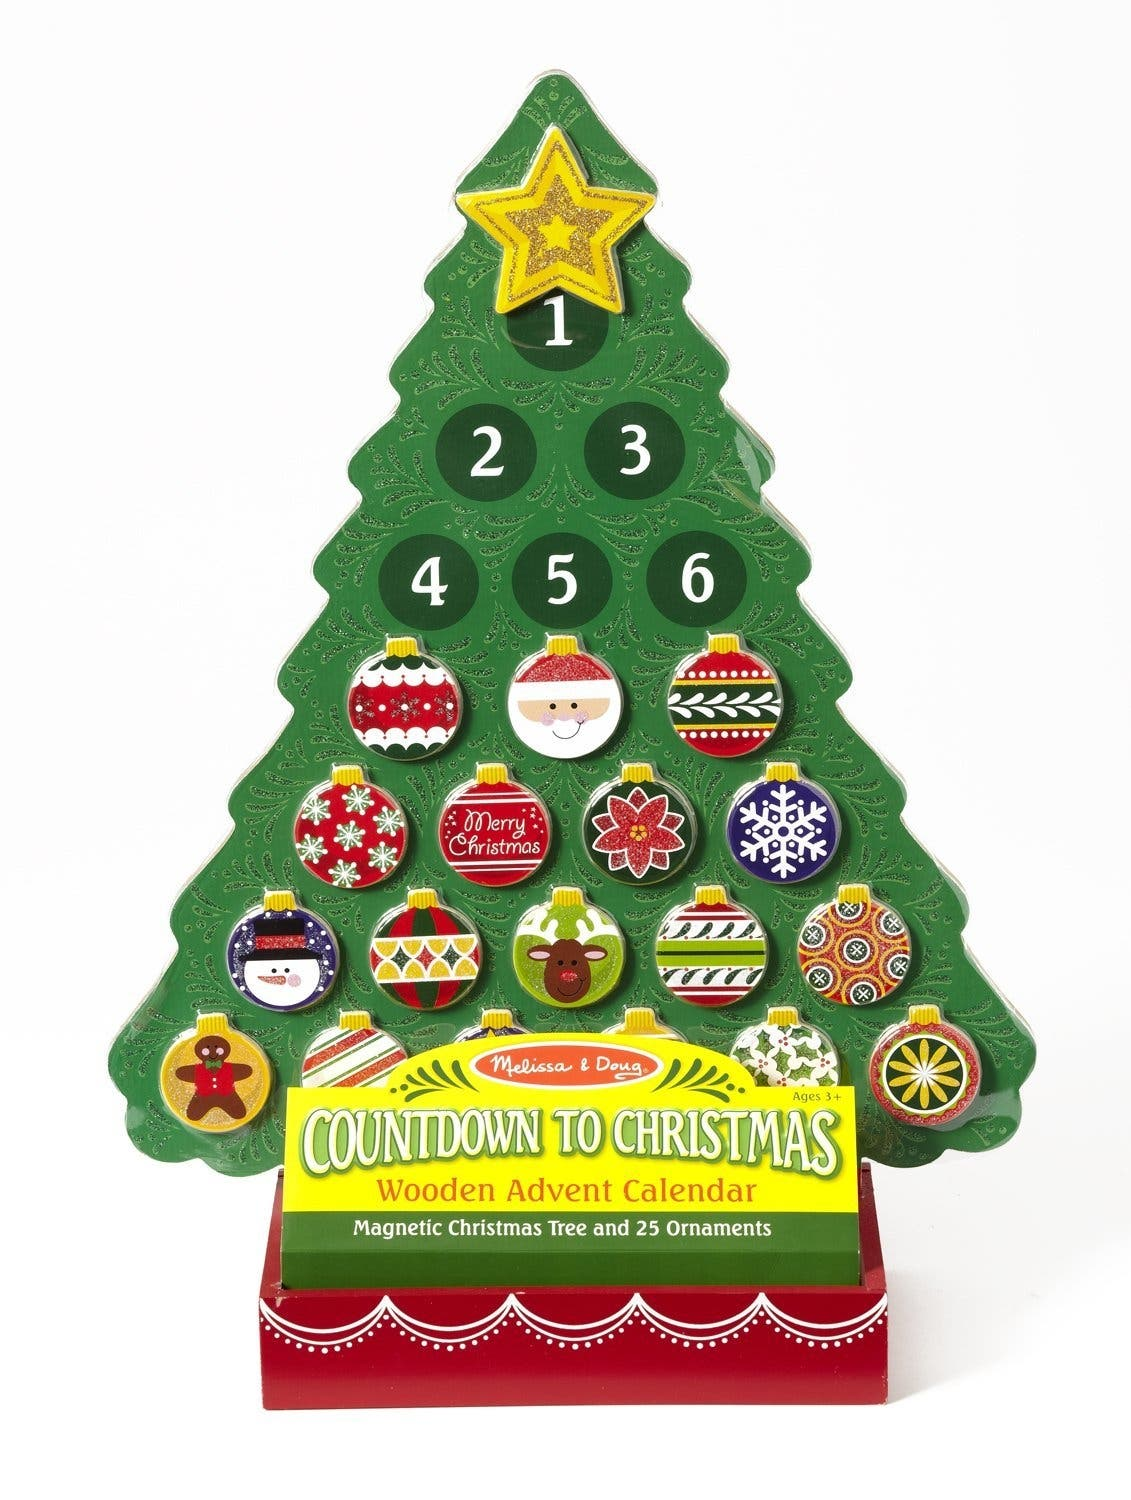 melissa doug countdown to christmas wooden advent calendar counting down to santas arrival is more fun than ever with this magnetic advent calendar - When Is The Best Time To Buy Christmas Decorations